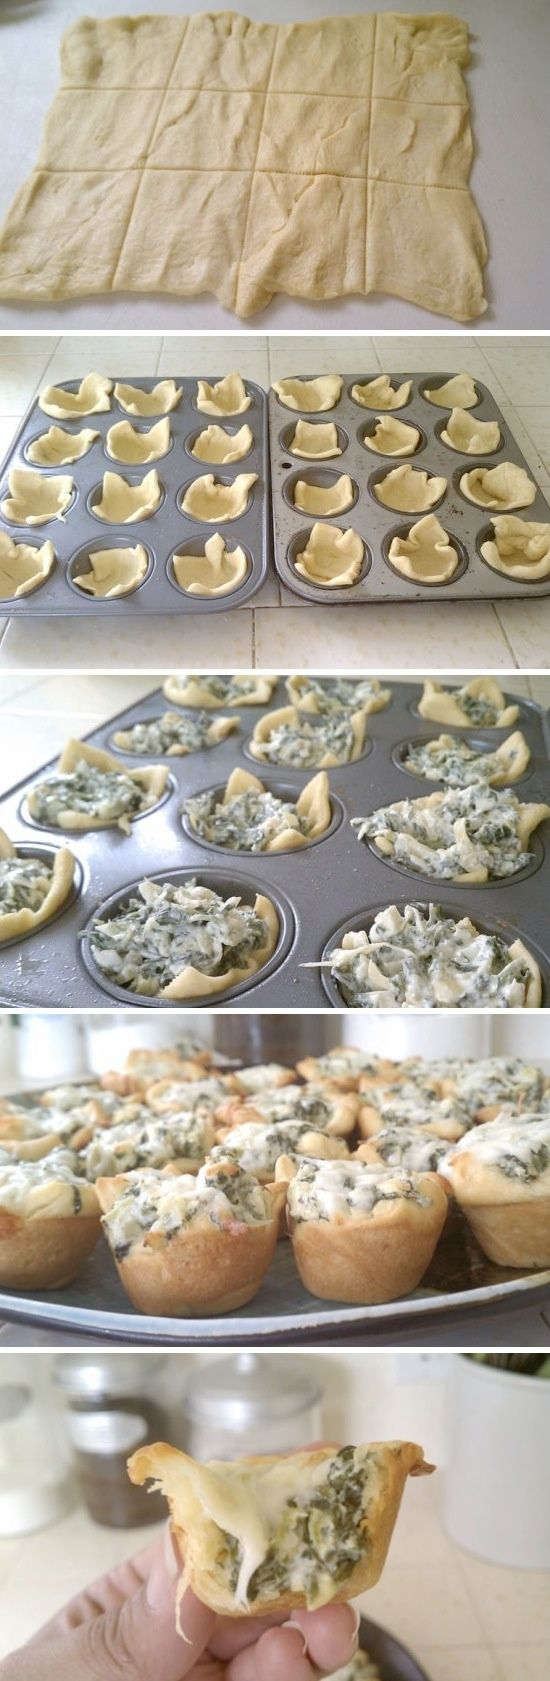 Spinach & Artichoke bites! Prepared pastry, rolled out and cut into squares as shown. Packet of Tastefully Simple Artichoke & Spinach mix...made as directed. Put pastry squares in mini muffin tin. Fill pastry with dollops of dip. Bake at 375 for about 12-15 minutes..til pastry is golden.